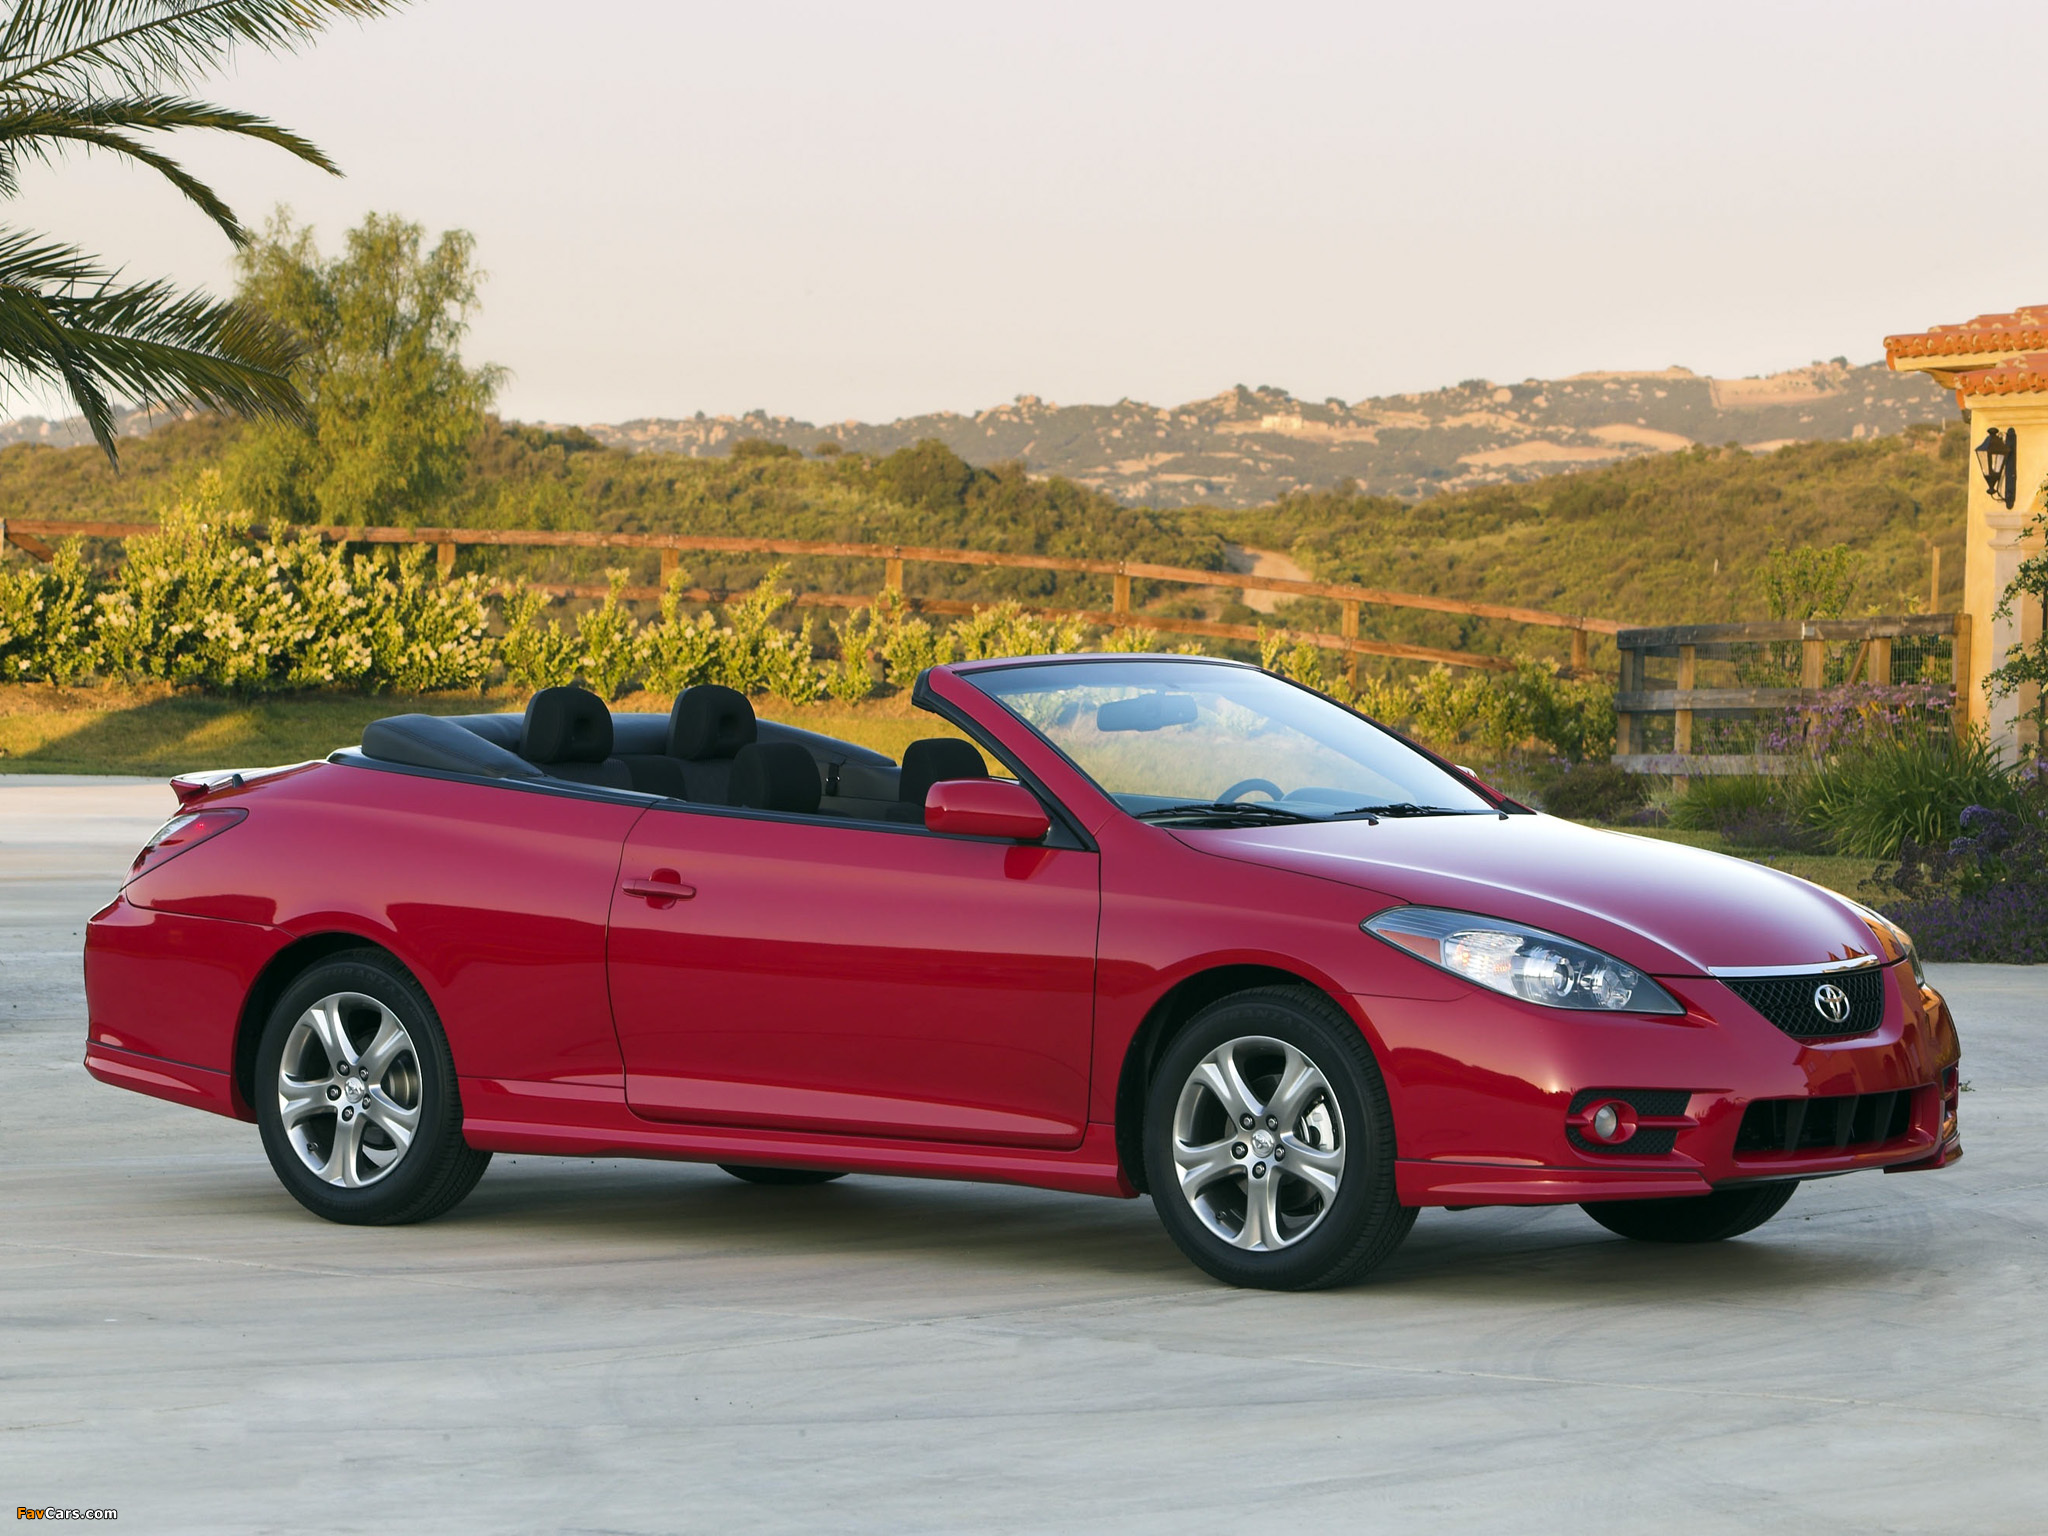 Toyota Camry Solara Sport Convertible 2006 09 Pictures